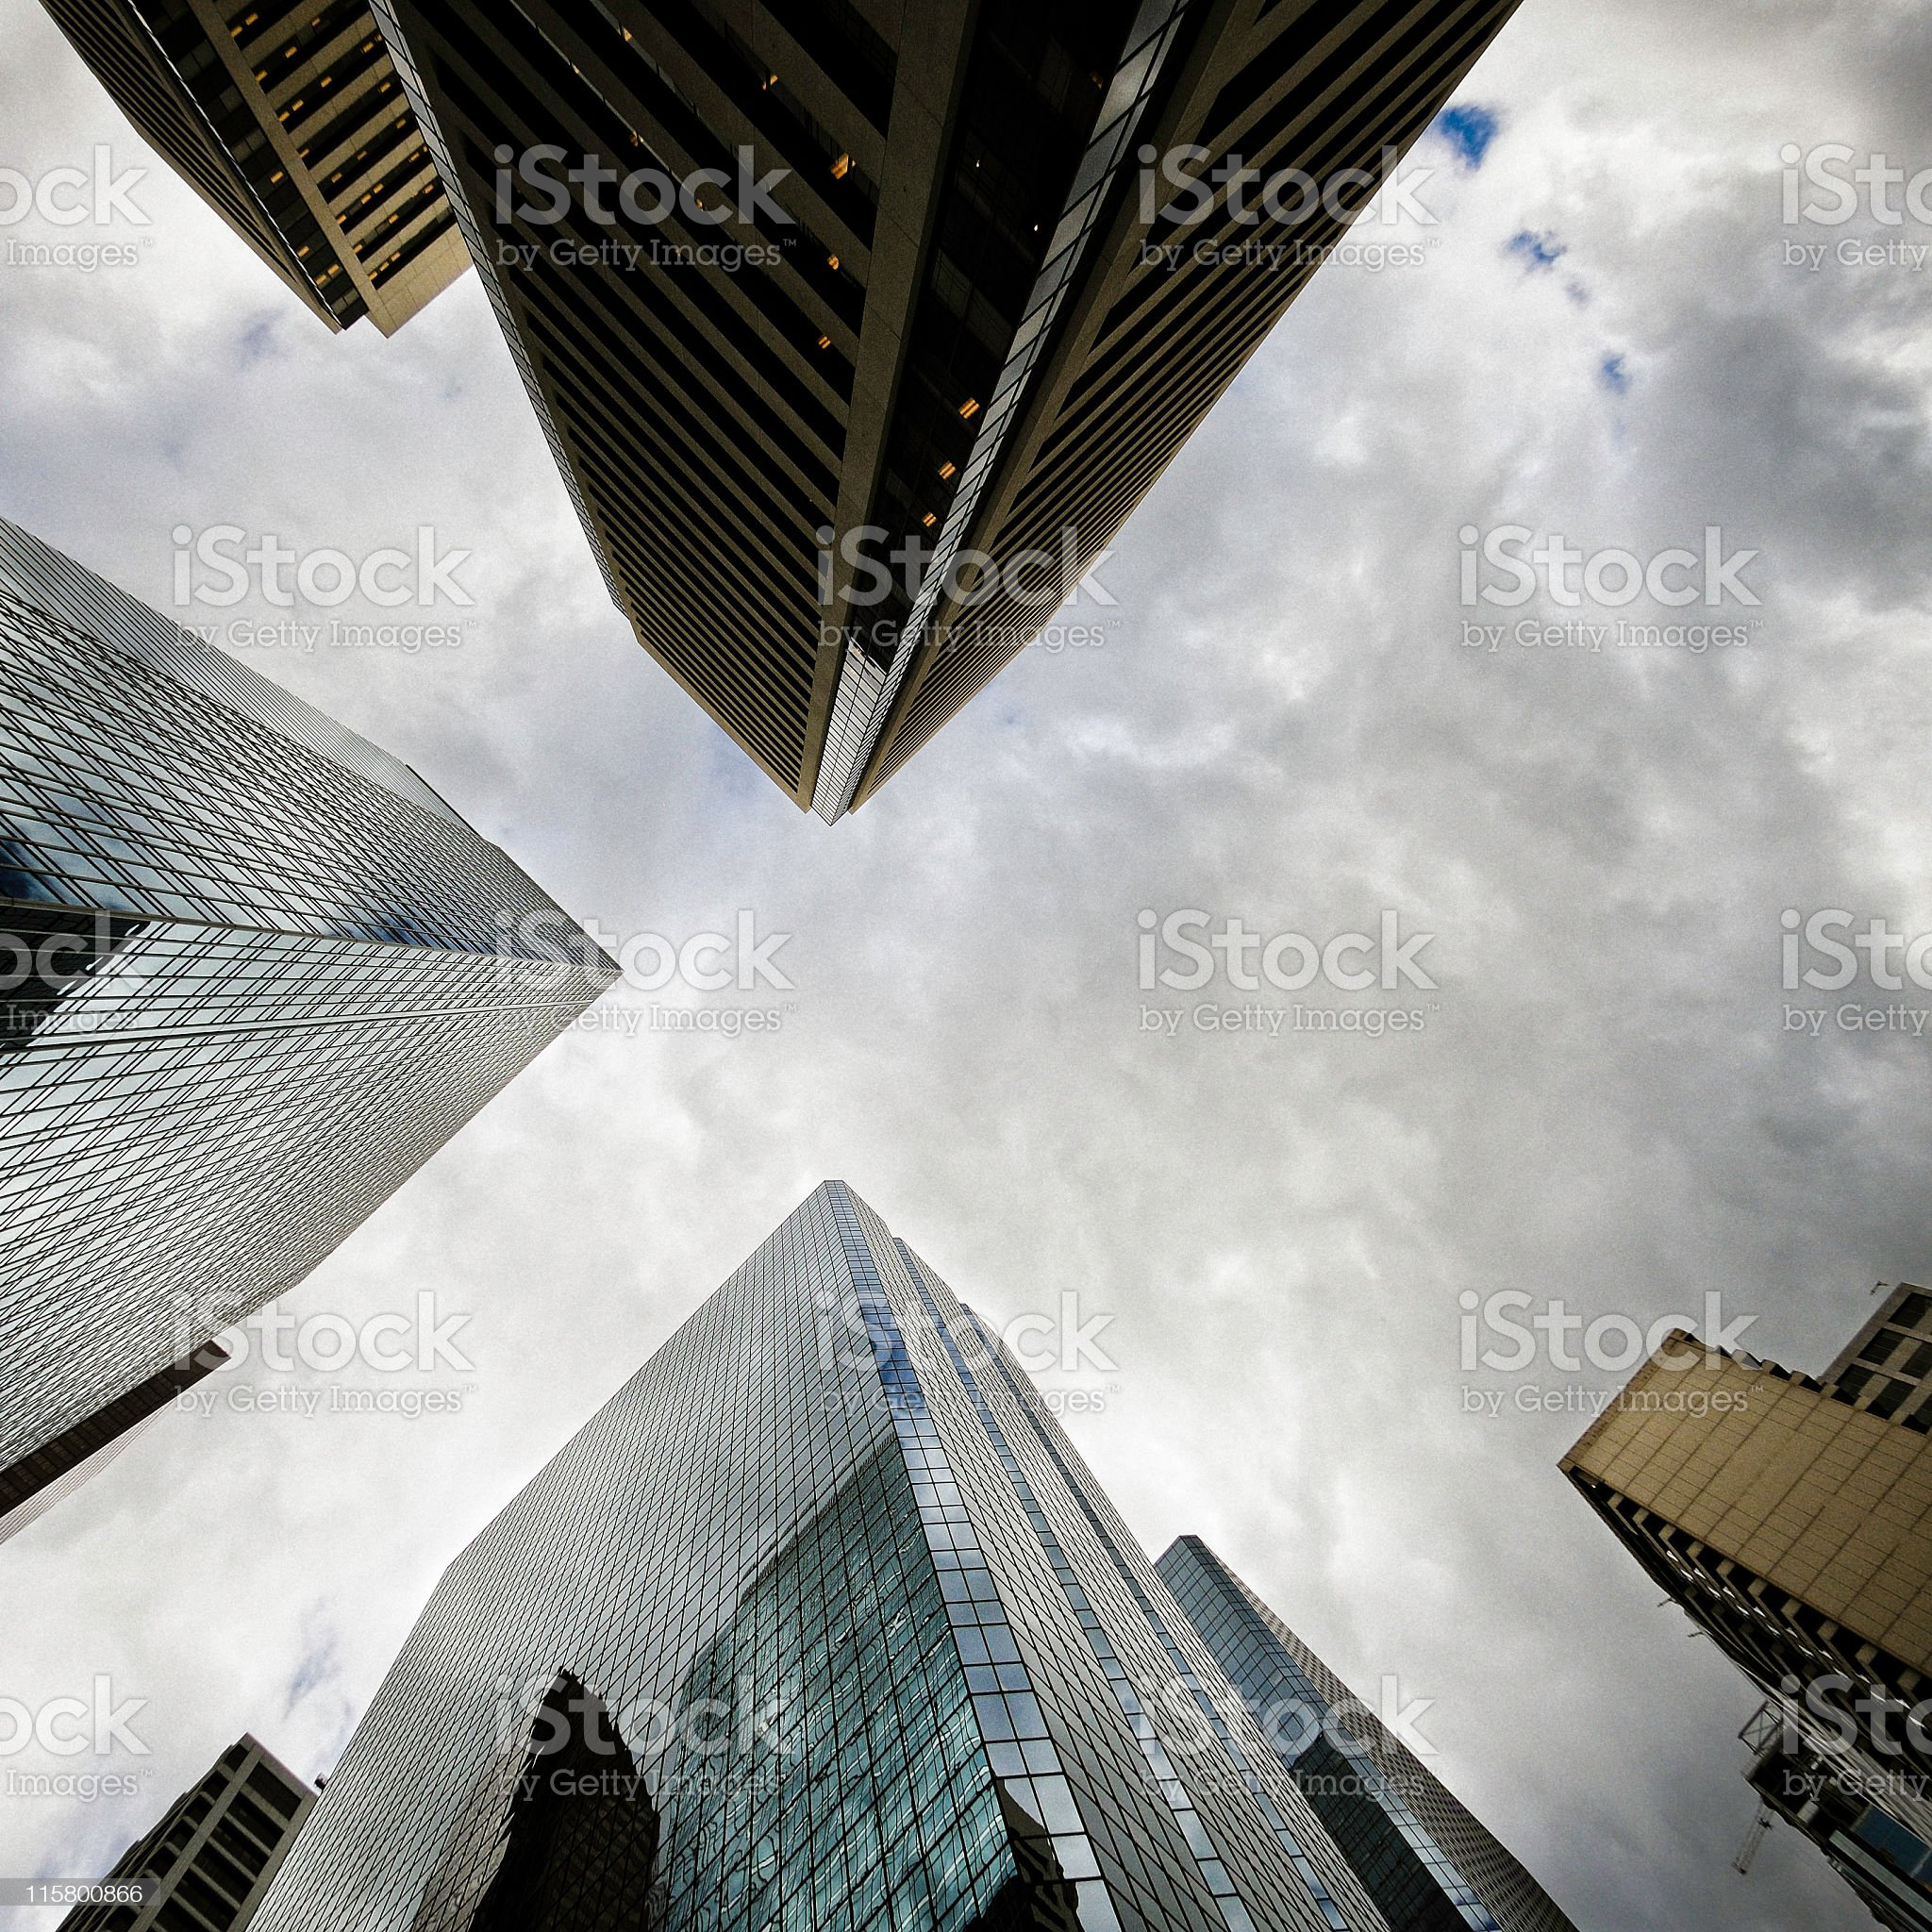 Moody corporate structures royalty-free stock photo